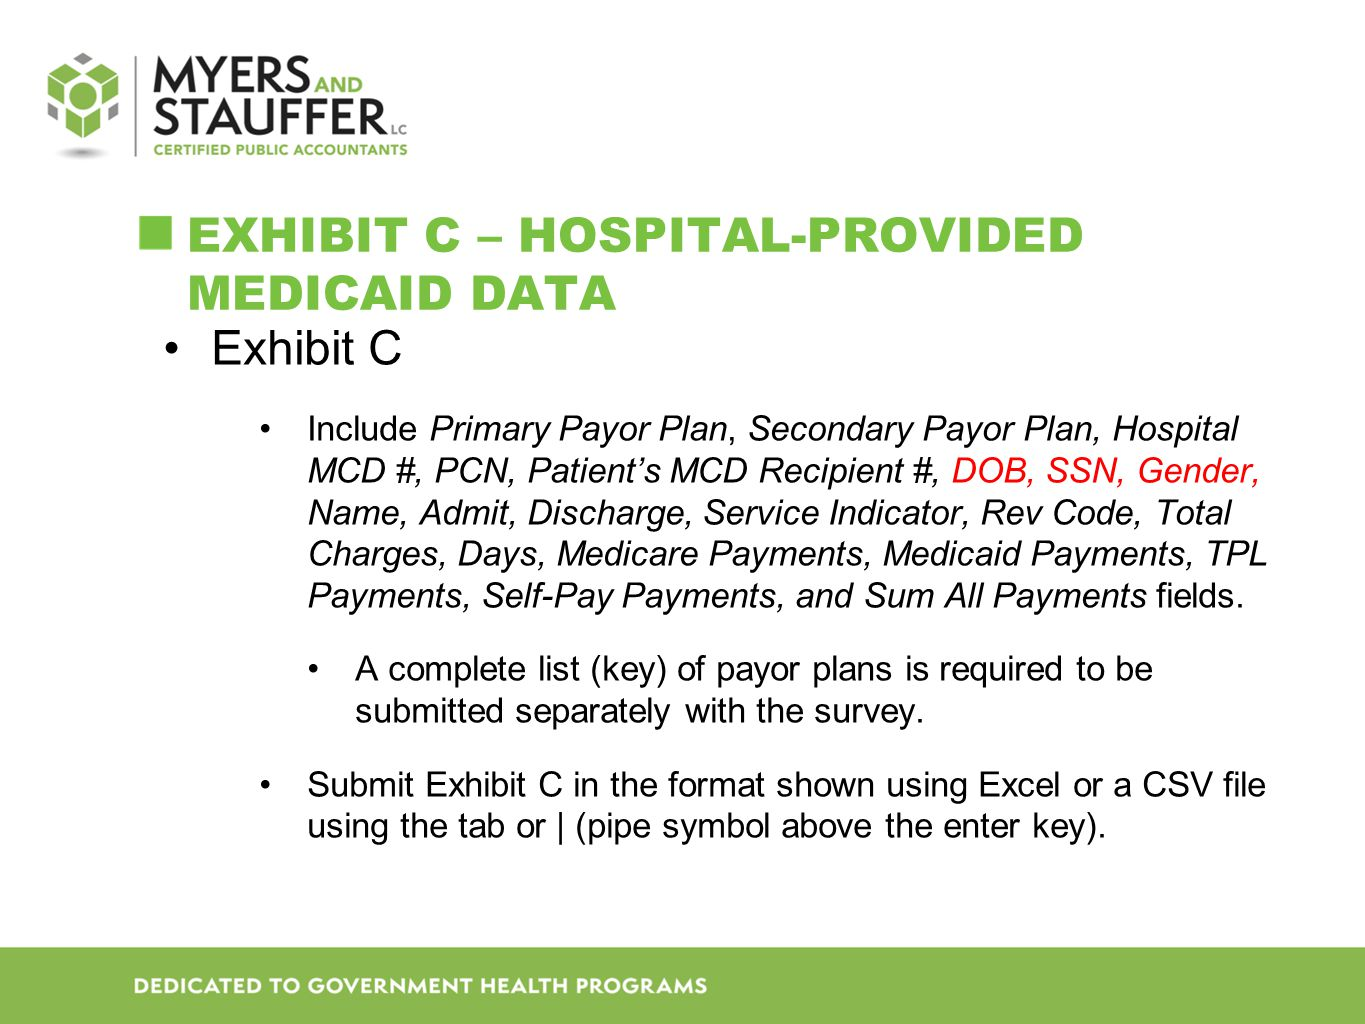 EXHIBIT C – HOSPITAL-PROVIDED MEDICAID DATA Exhibit C Include Primary Payor Plan, Secondary Payor Plan, Hospital MCD #, PCN, Patient's MCD Recipient #, DOB, SSN, Gender, Name, Admit, Discharge, Service Indicator, Rev Code, Total Charges, Days, Medicare Payments, Medicaid Payments, TPL Payments, Self-Pay Payments, and Sum All Payments fields.